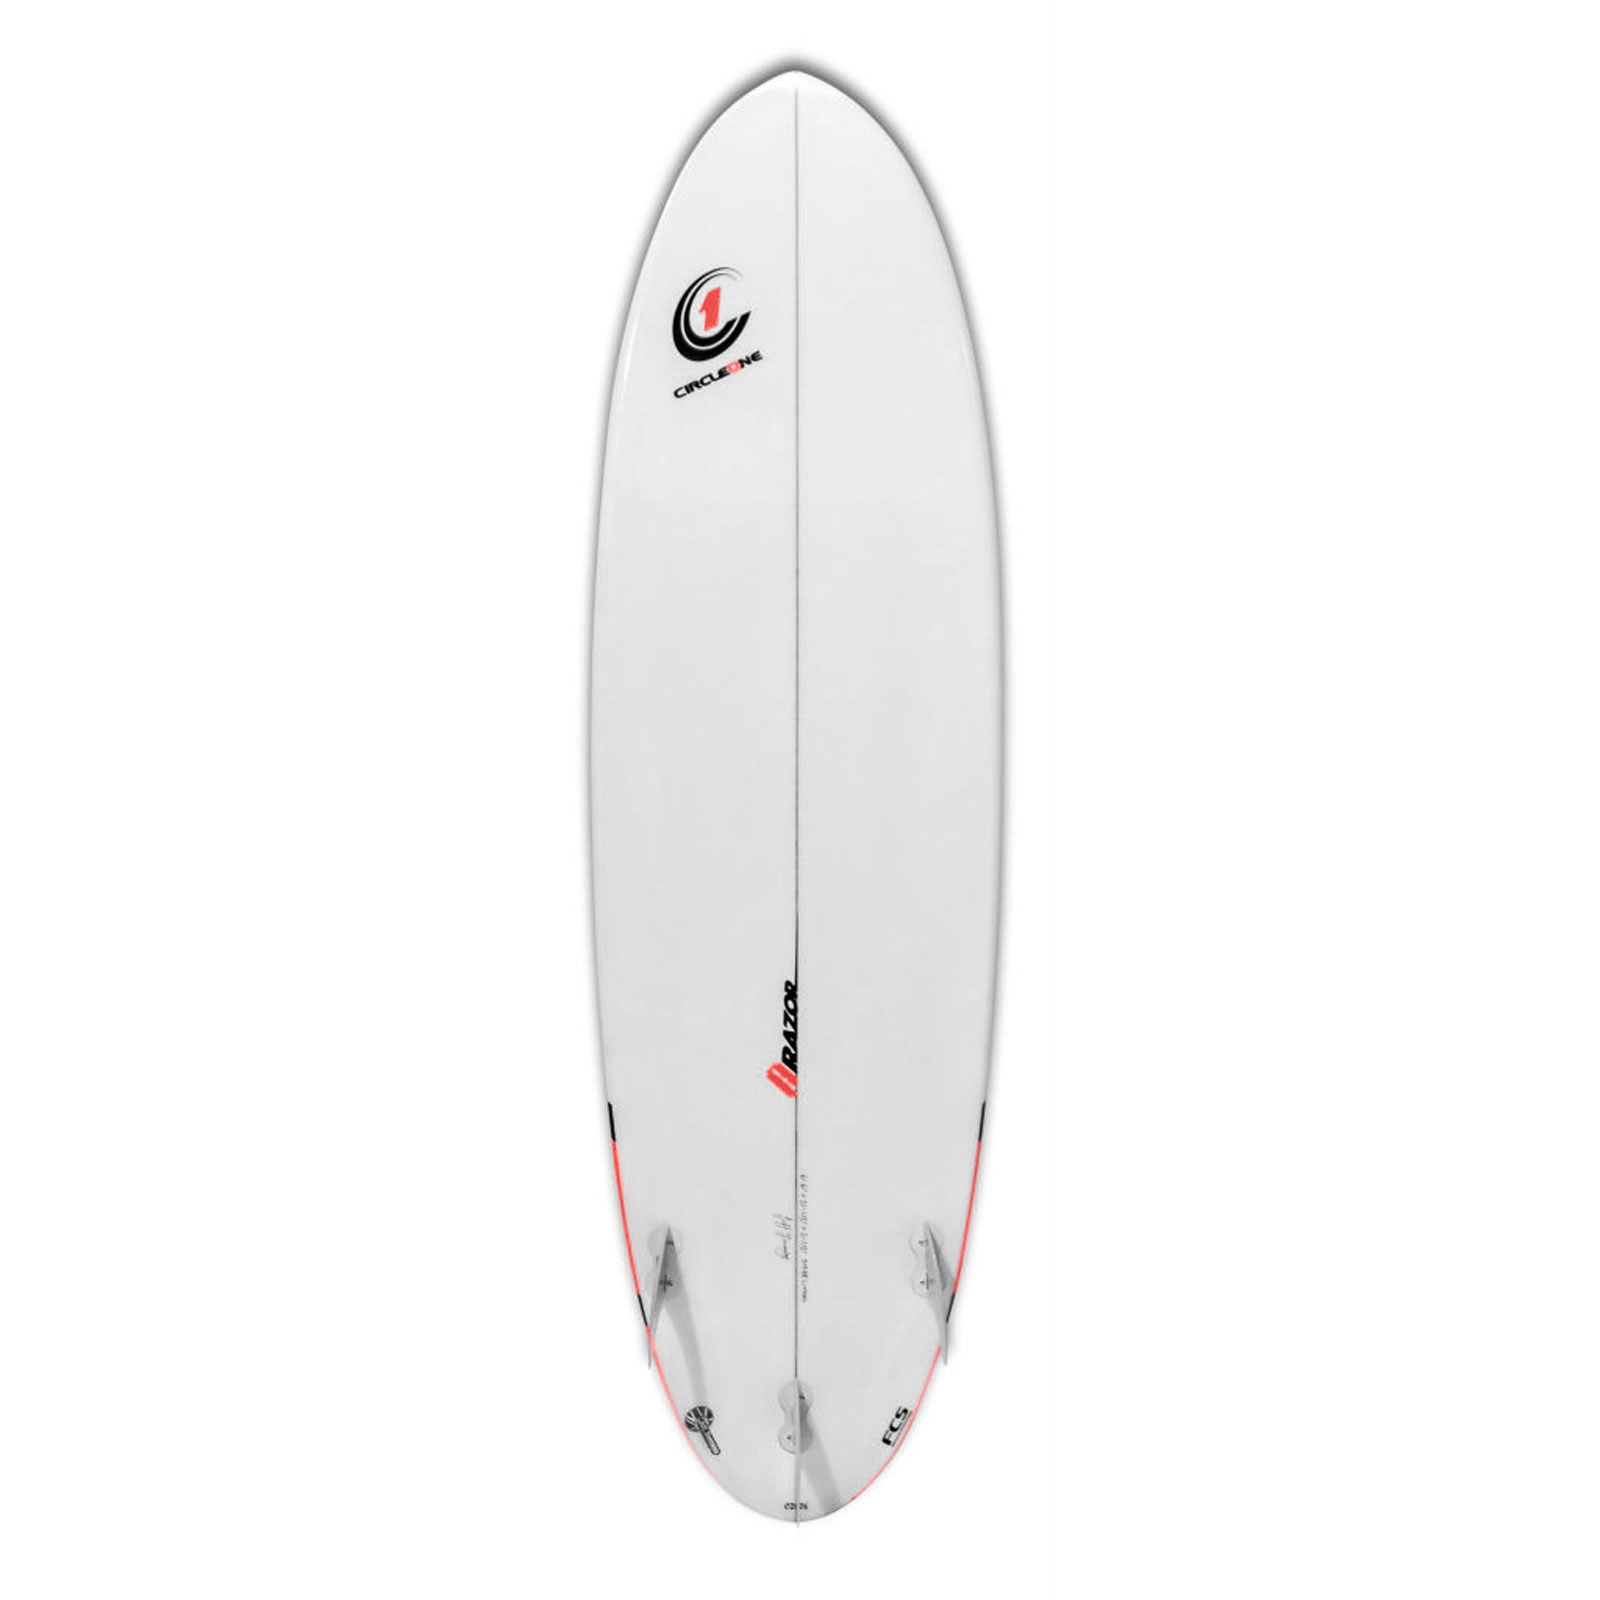 6ft 6inch Razor Surfboard - Round Tail Shortboard - Gloss Finish